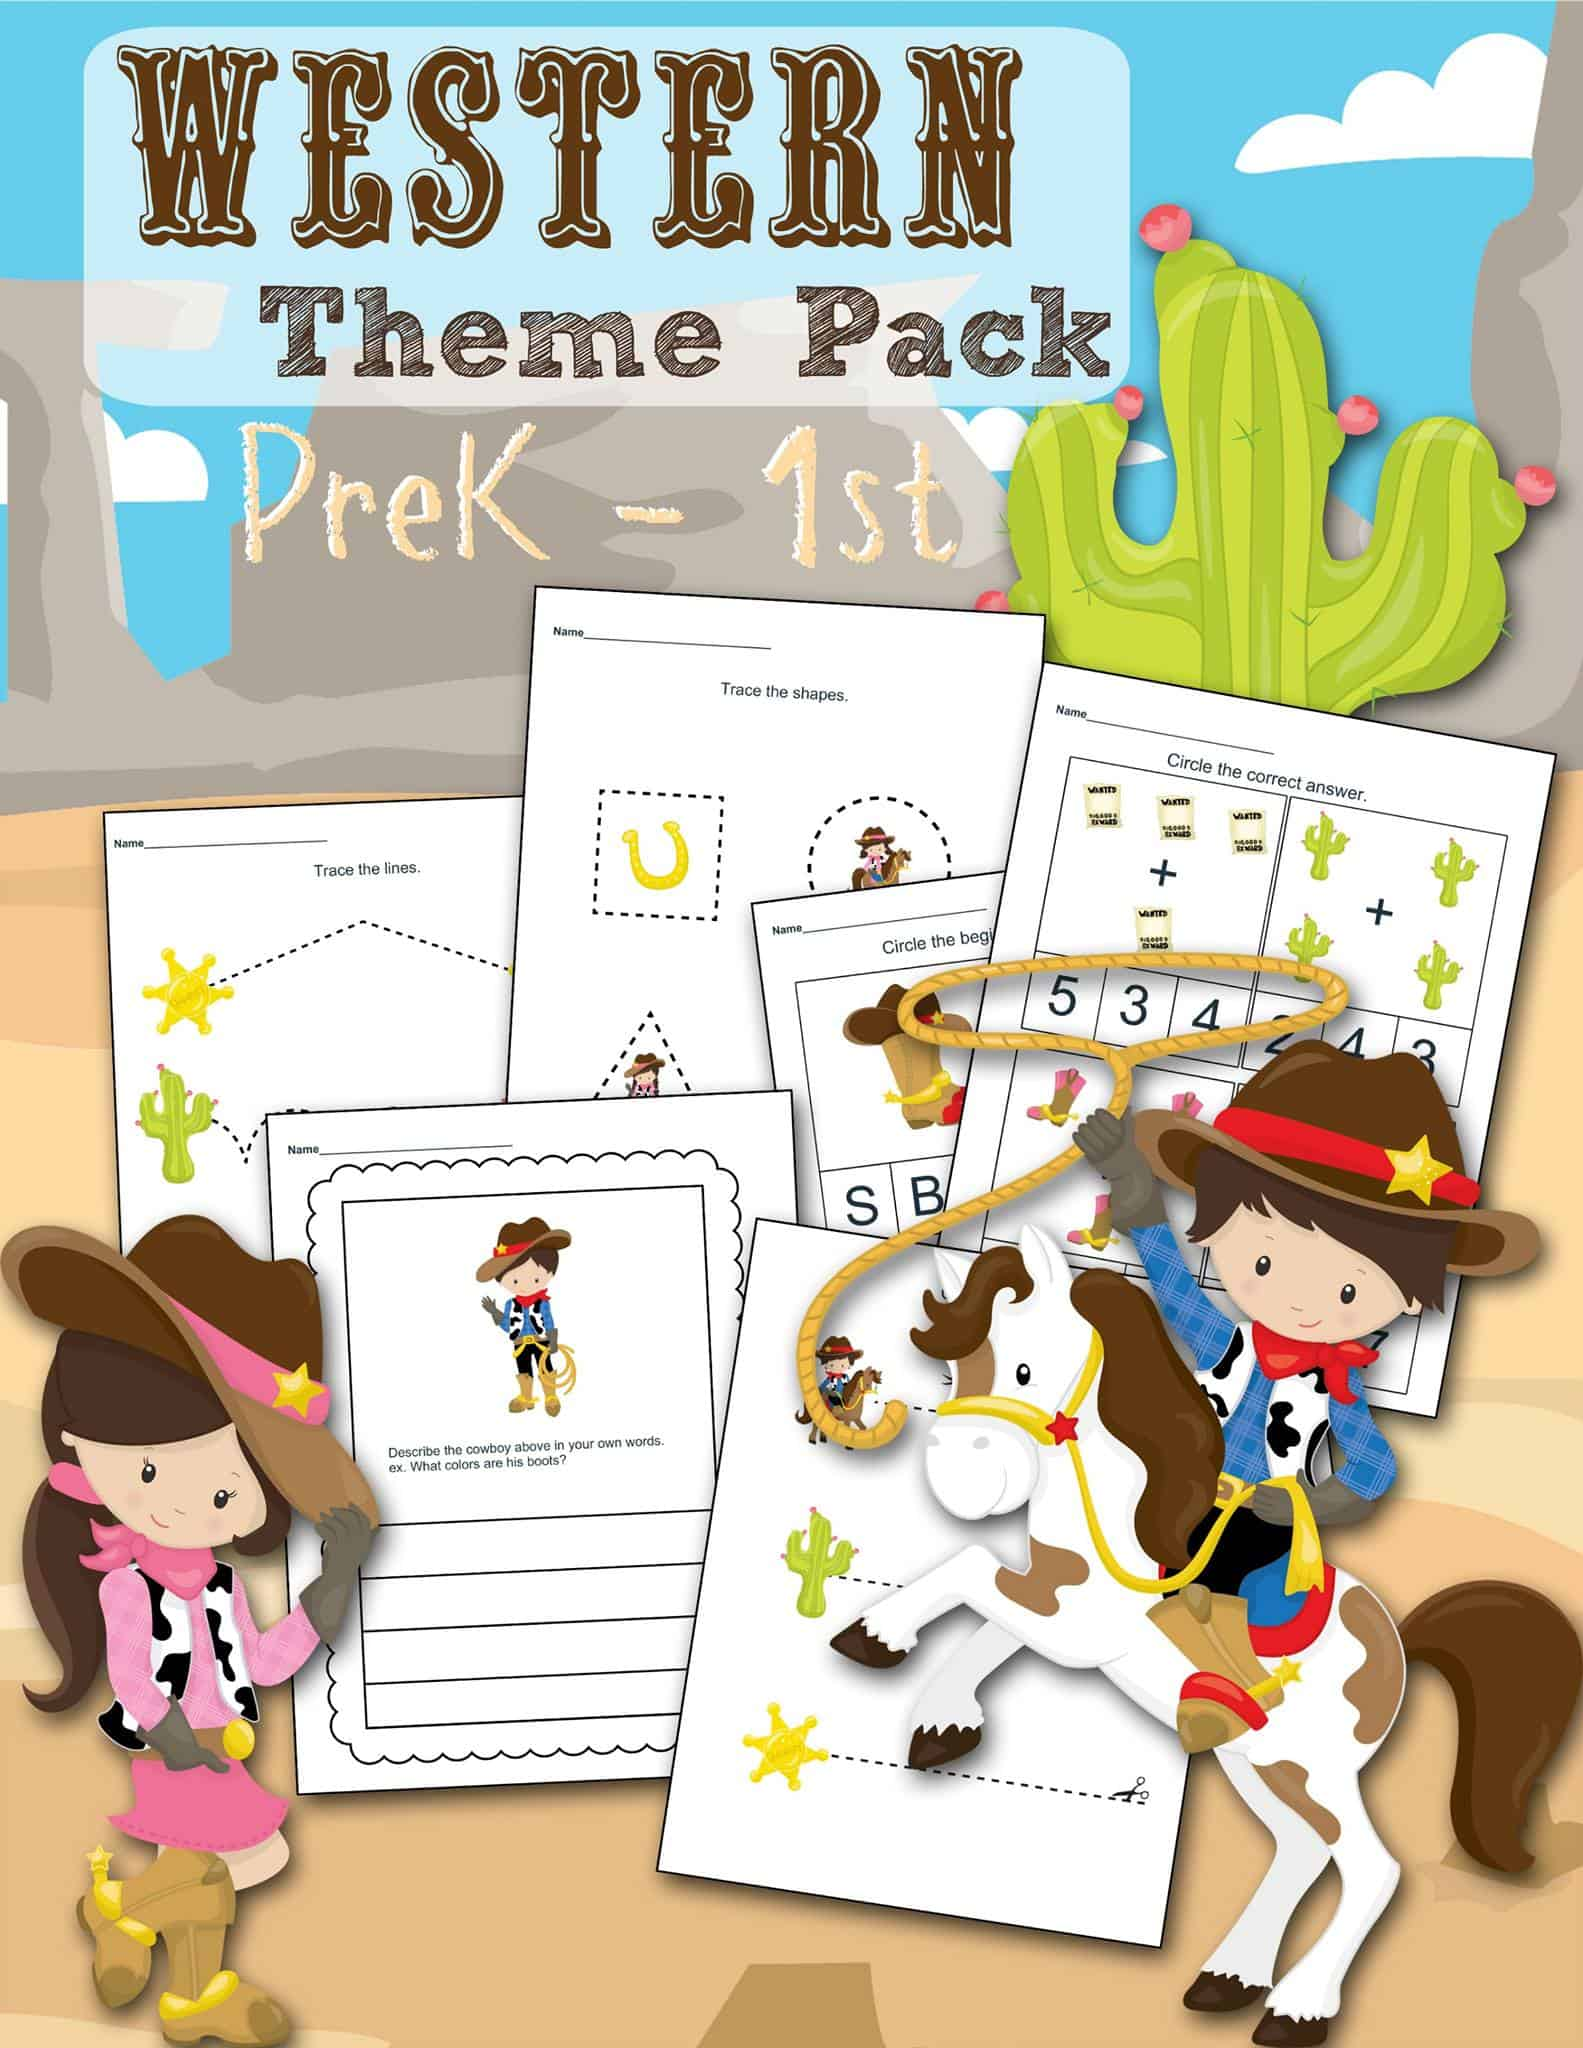 Free Western Themed Preschool Printable Worksheet Set